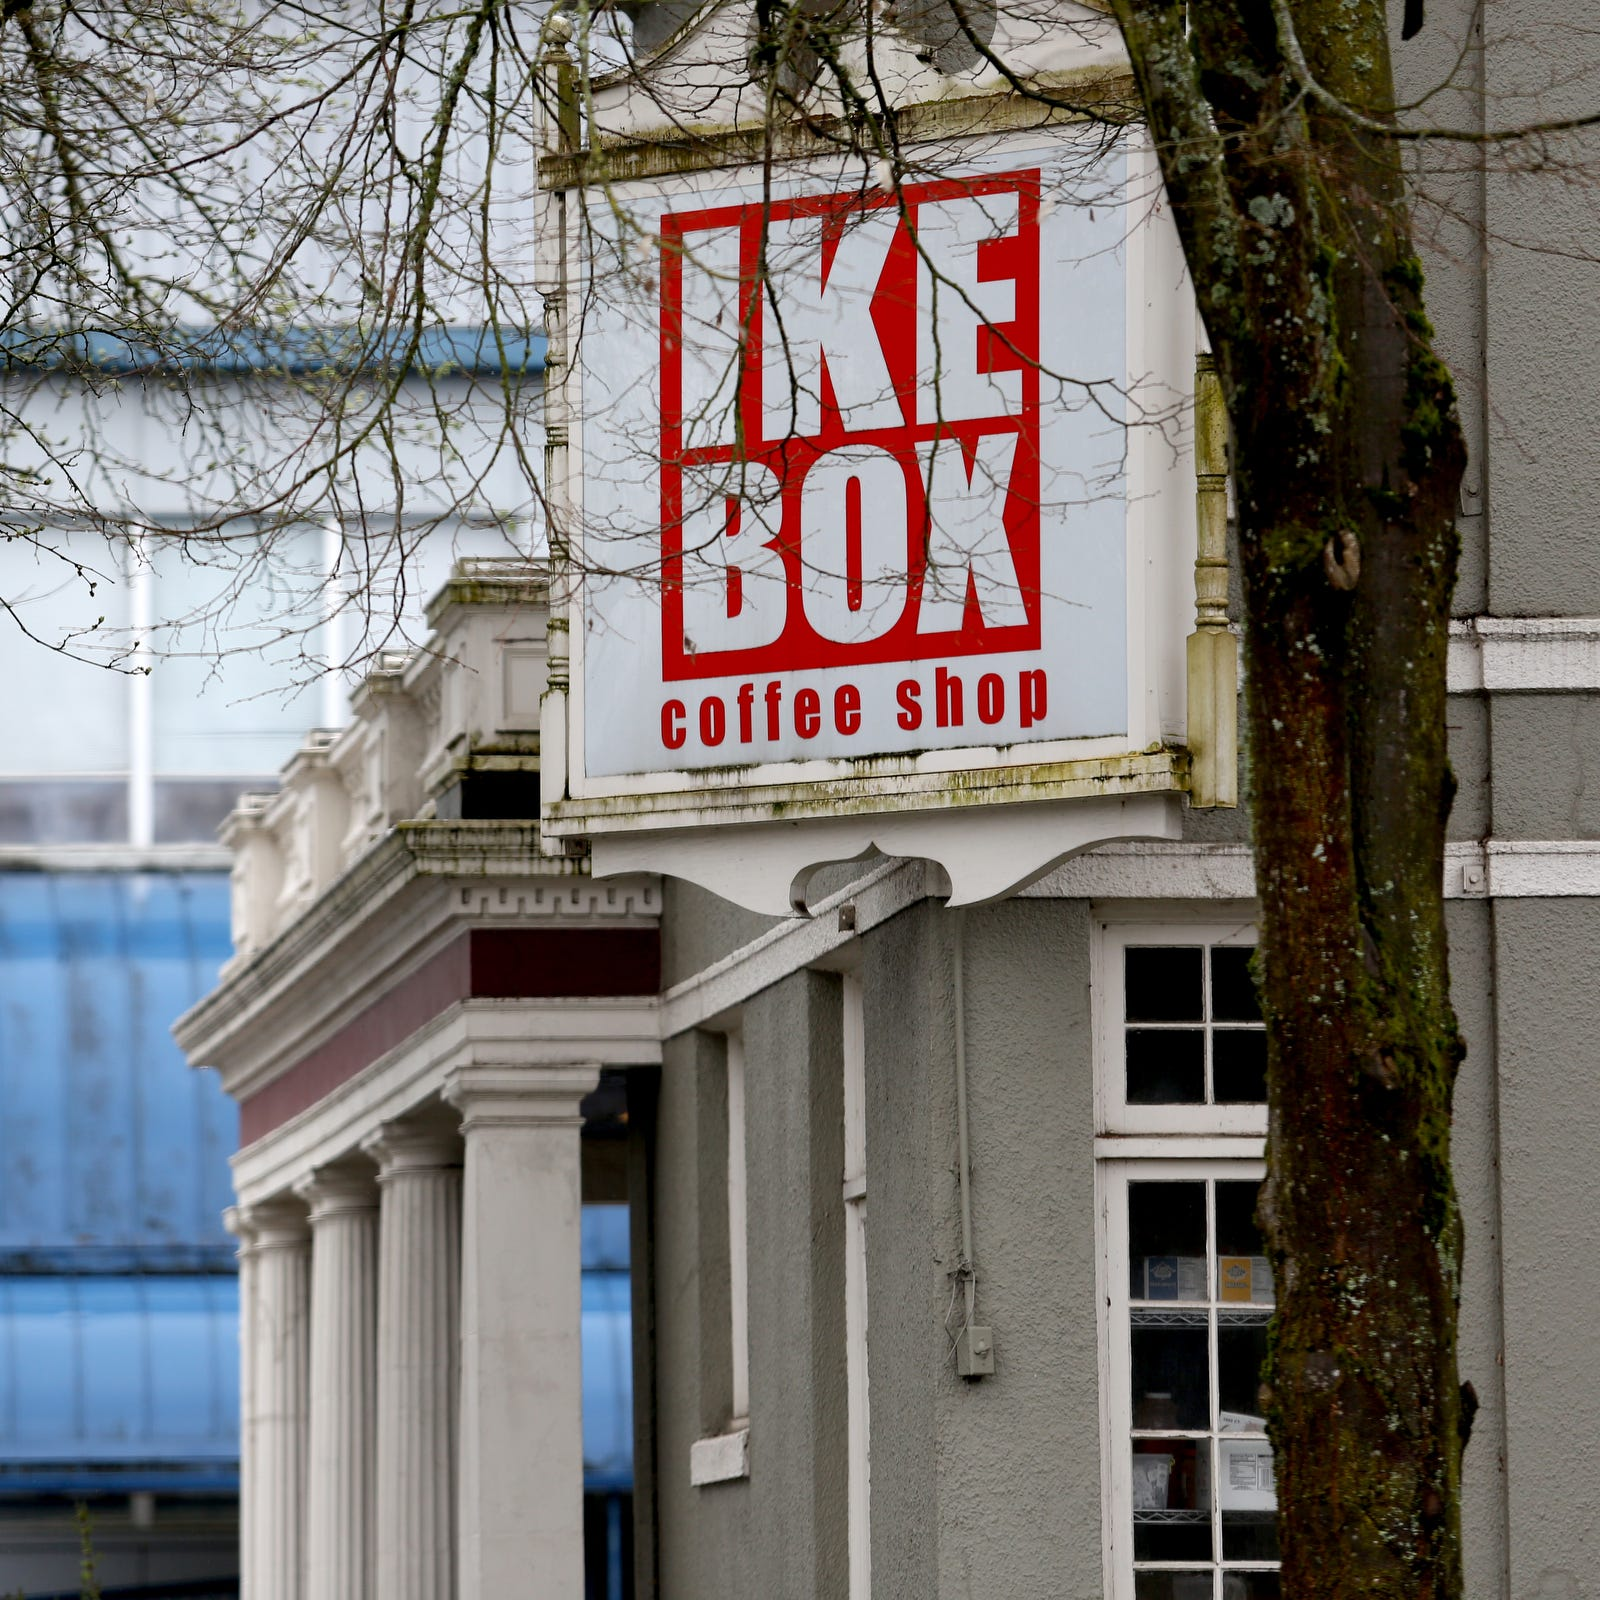 IKE Box owners seek $1.5 million to move two-story coffee shop building